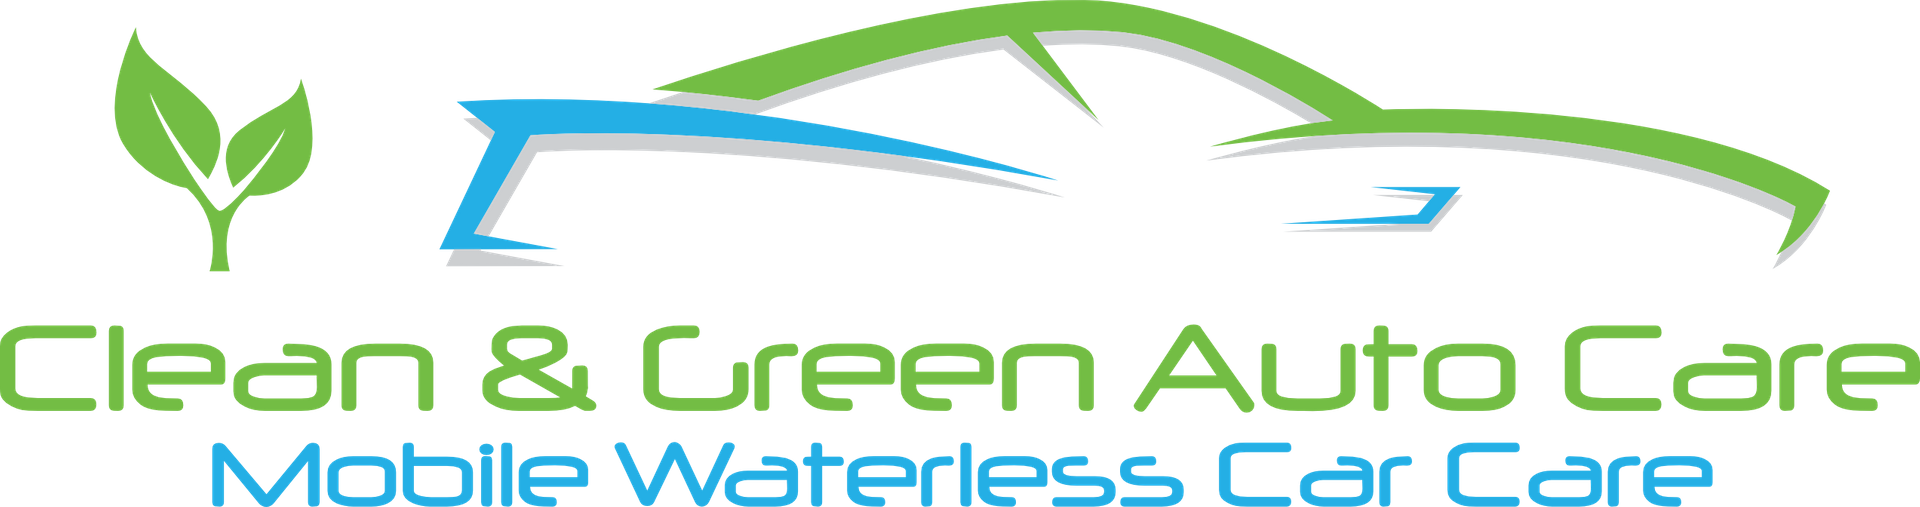 Clean & Green Auto Care | Waterless Car Wash